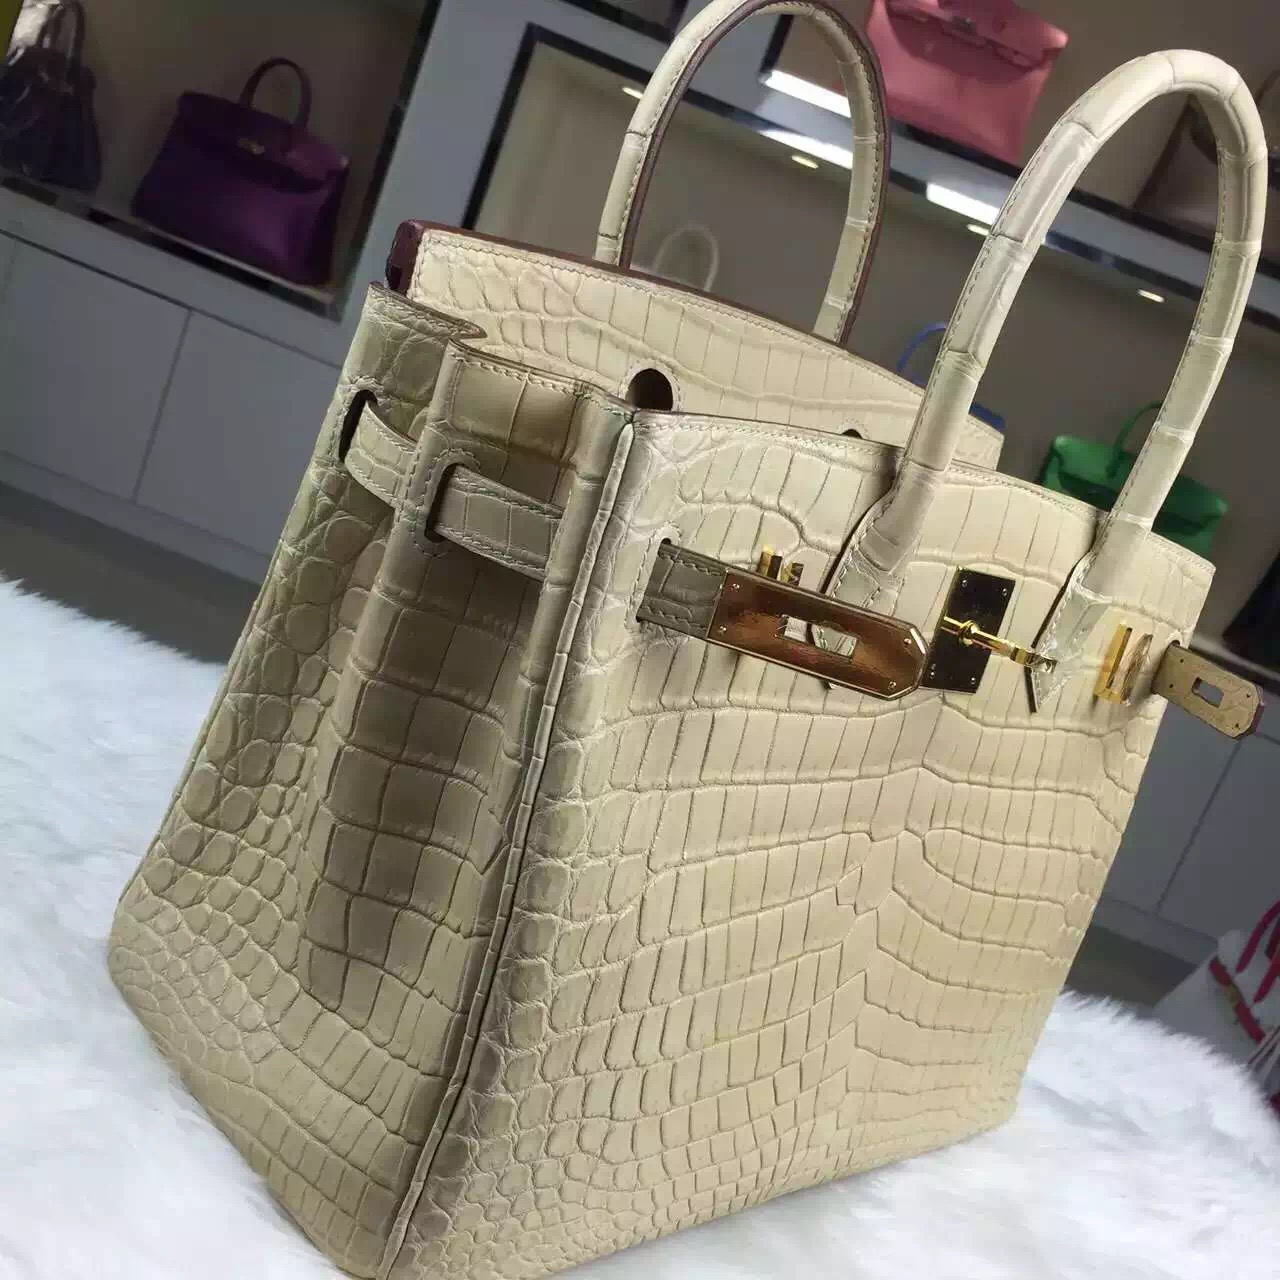 Discount Hermes Crocodile Matt Leather Birkin Bag 30CM in Apricot Ladies' Tote Bag